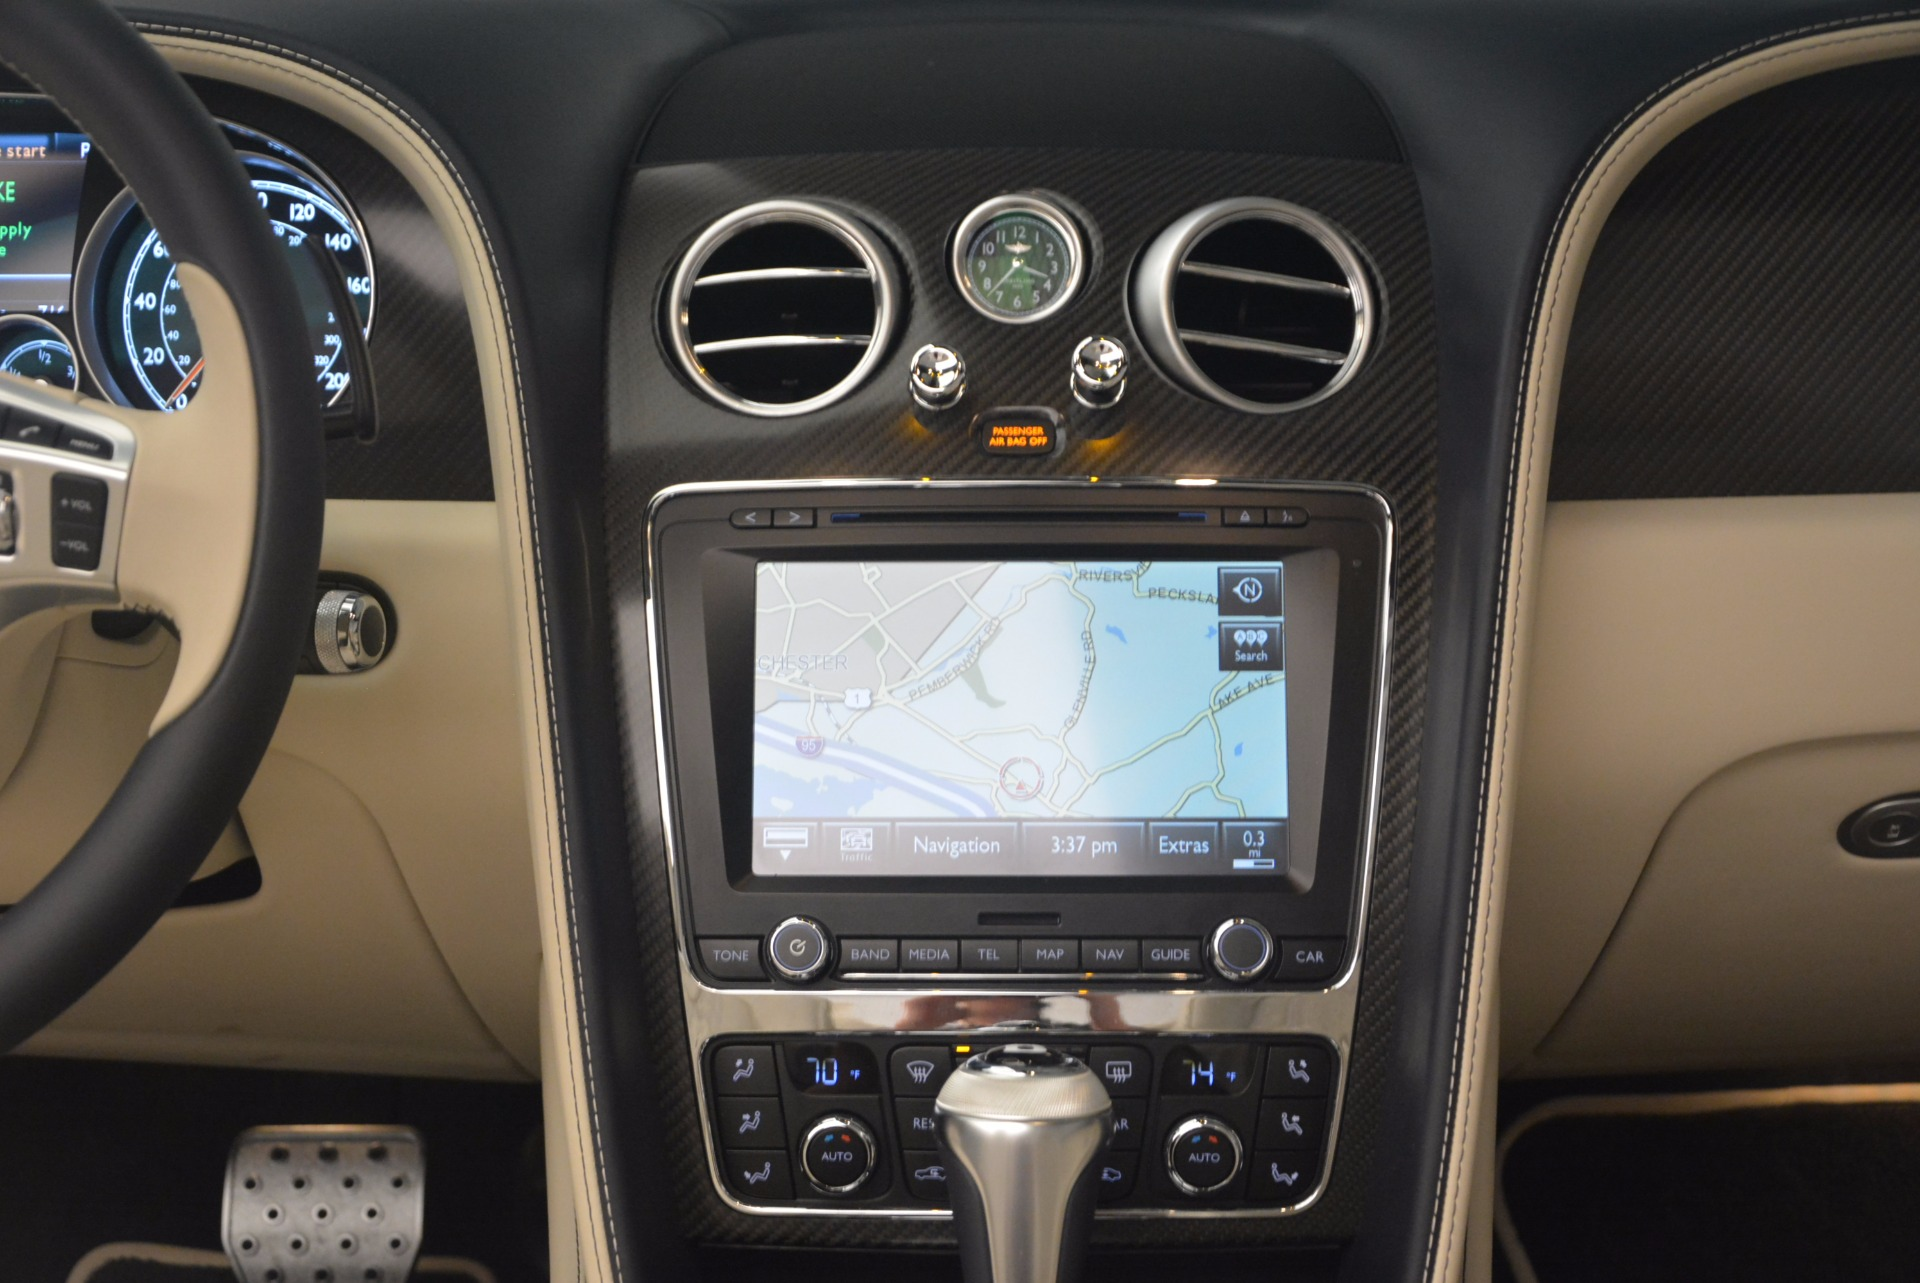 Used 2013 Bentley Continental GT V8 Le Mans Edition, 1 of 48 For Sale In Greenwich, CT. Alfa Romeo of Greenwich, 7226 1288_p39